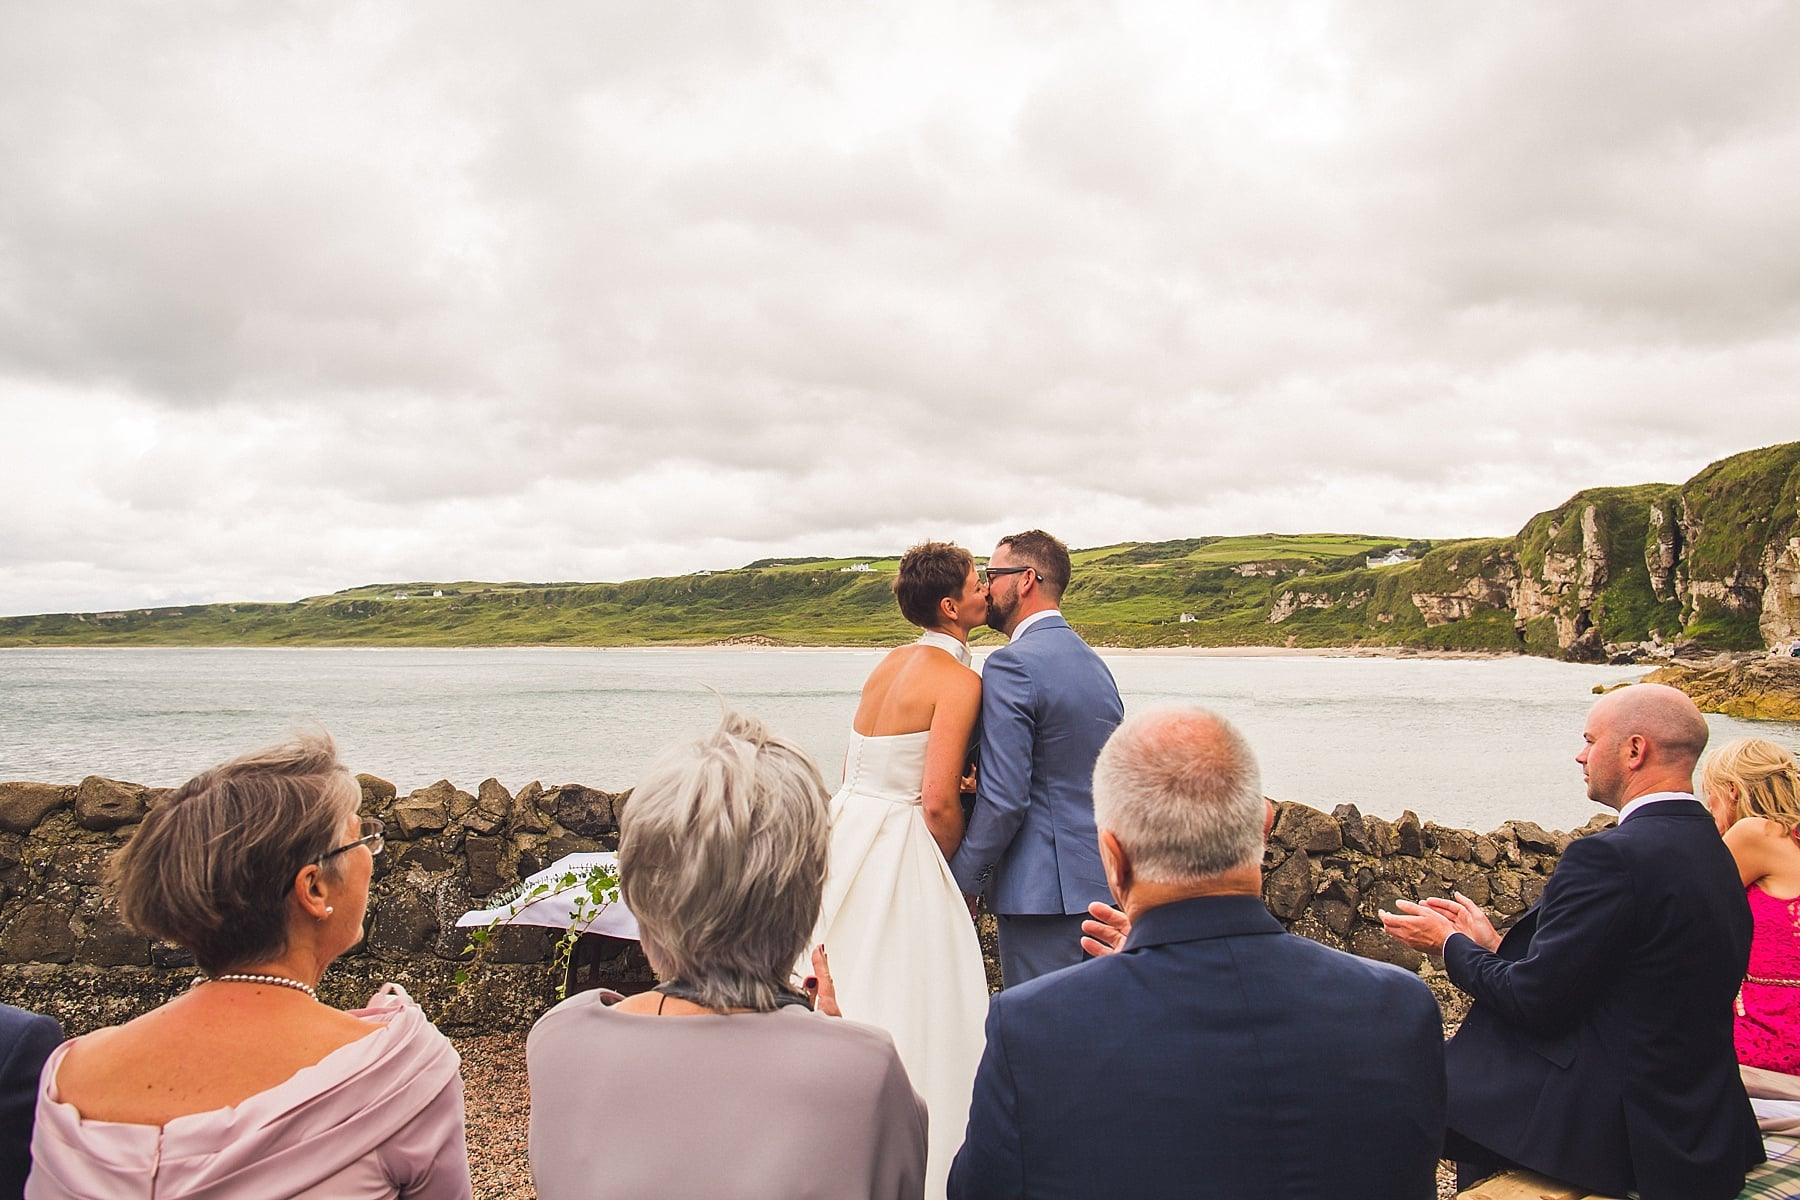 Portbradden harbour wedding,outdoor ceremony,national trust,intimate wedding,north coast ireland elopement,